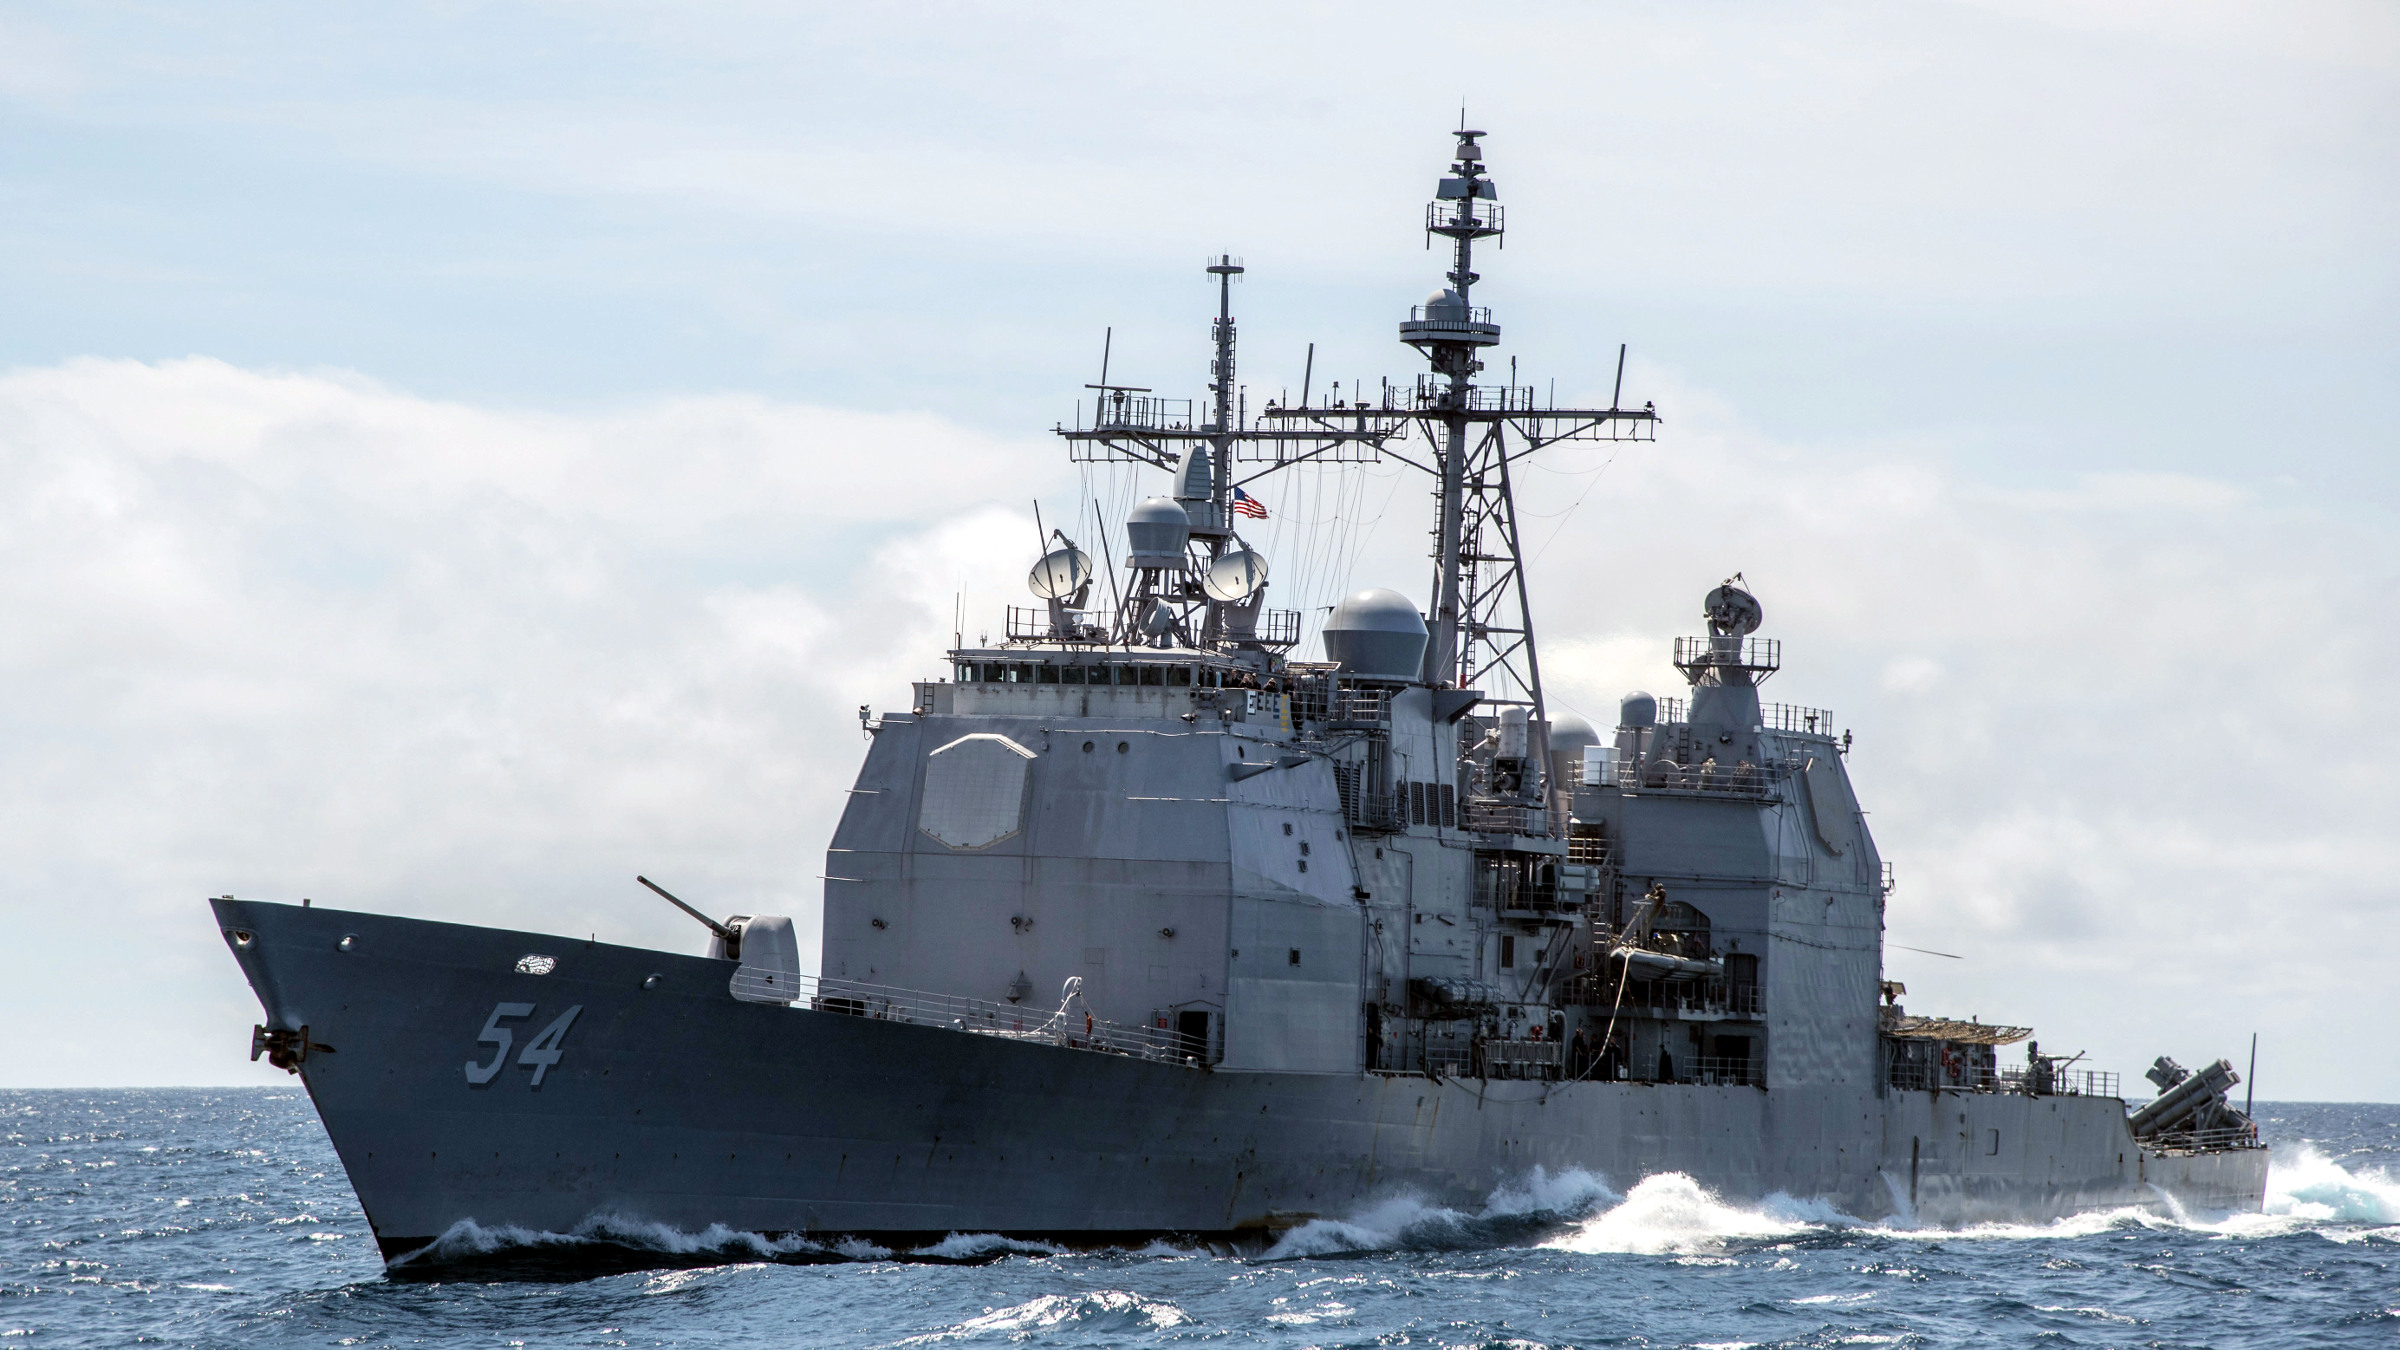 """FILE - This Mar. 6, 2016, file photo provided by the U.S. Navy, shows the Ticonderoga-class guided-missile cruiser USS Antietam (CG 54) sails in the South China Sea. China says it dispatched warships to identify and warn off a pair of U.S. Navy vessels sailing near one of its island claims in the South China Sea. A statement on the Defense Ministry's website said the Arleigh Burke class guided-missile destroyer USS Higgins and Ticonderoga class guided-missile cruiser USS Antietam entered waters China claims in the Paracel island group """"without the permission of the Chinese government."""""""